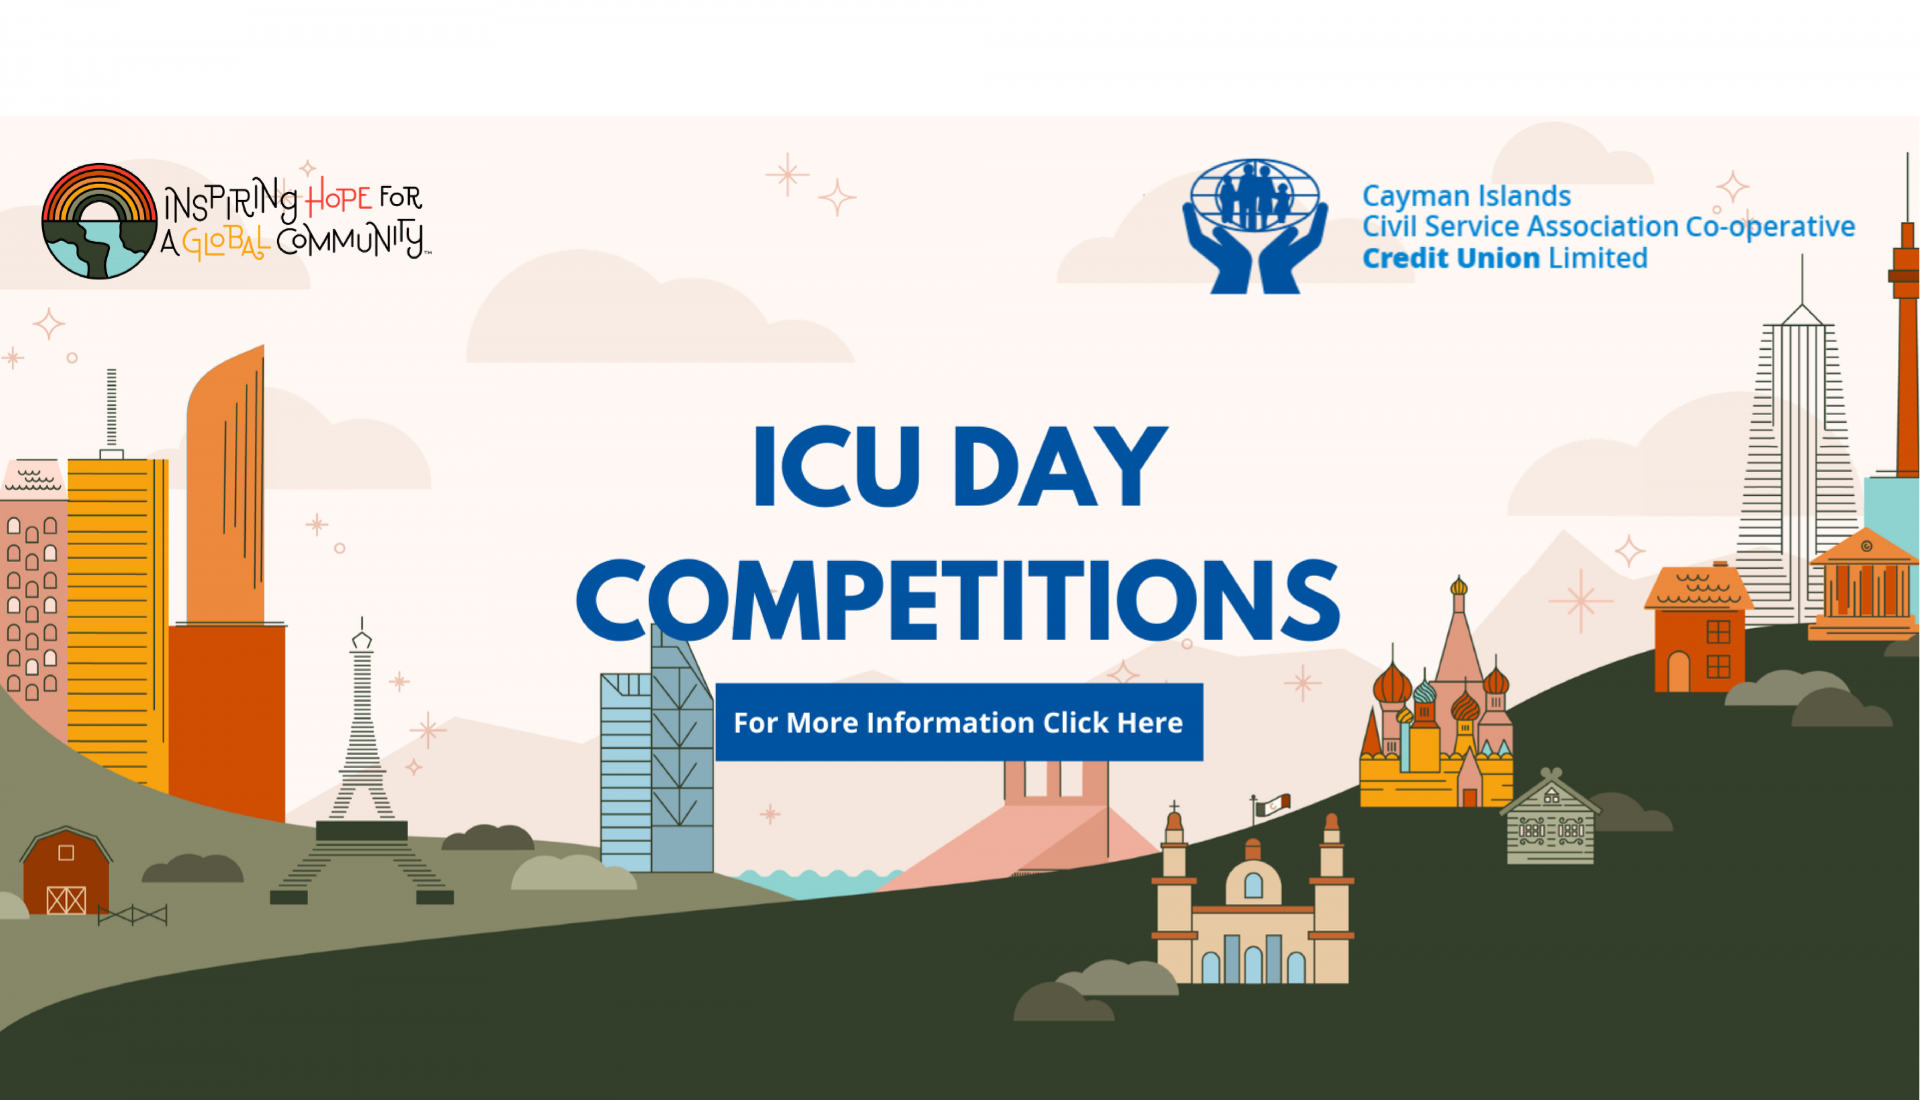 ICU DAY COMPETITIONS